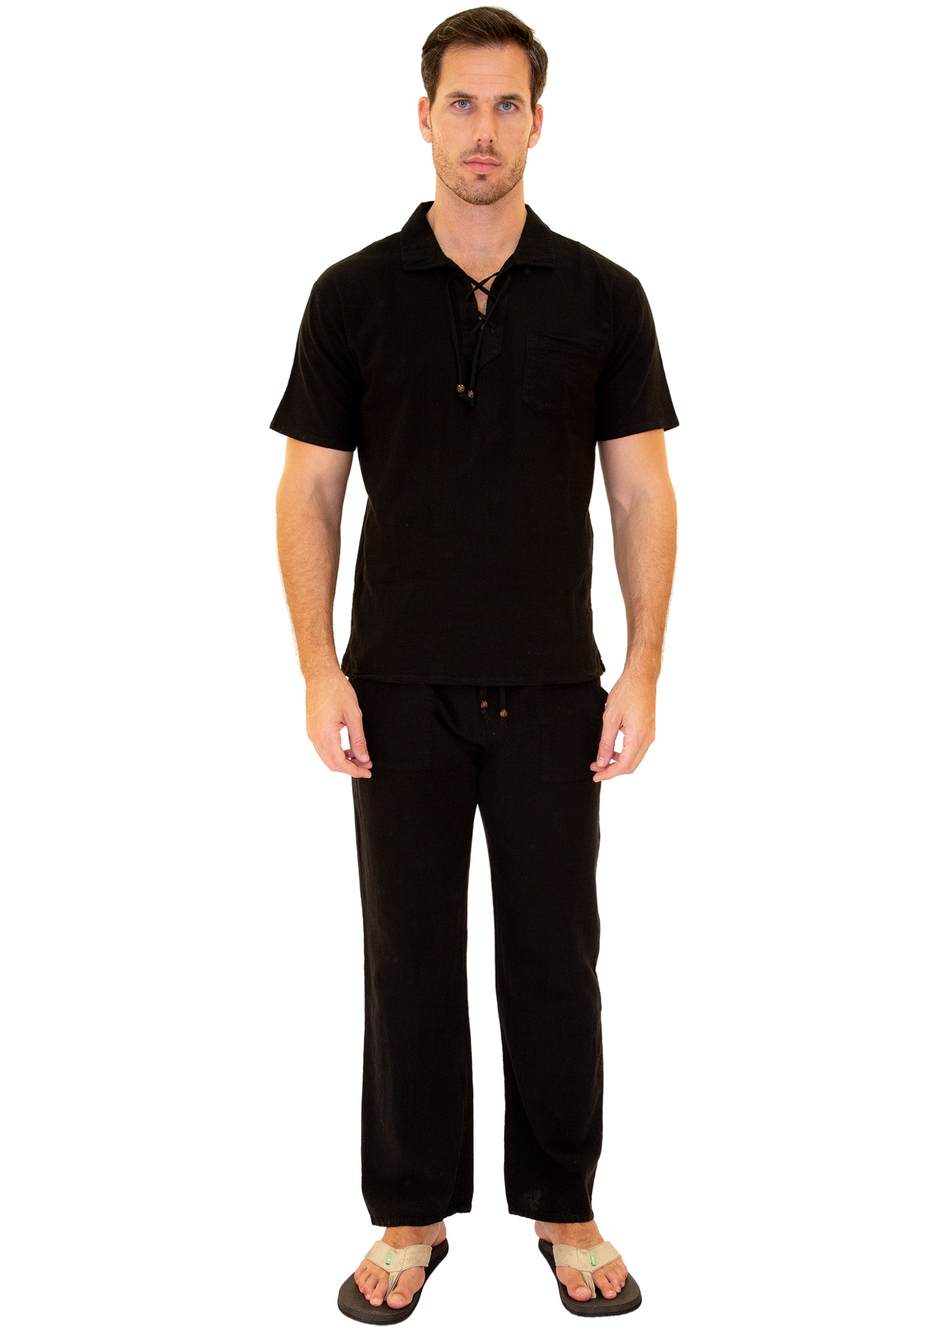 GZ1010 - Black Cotton Pants